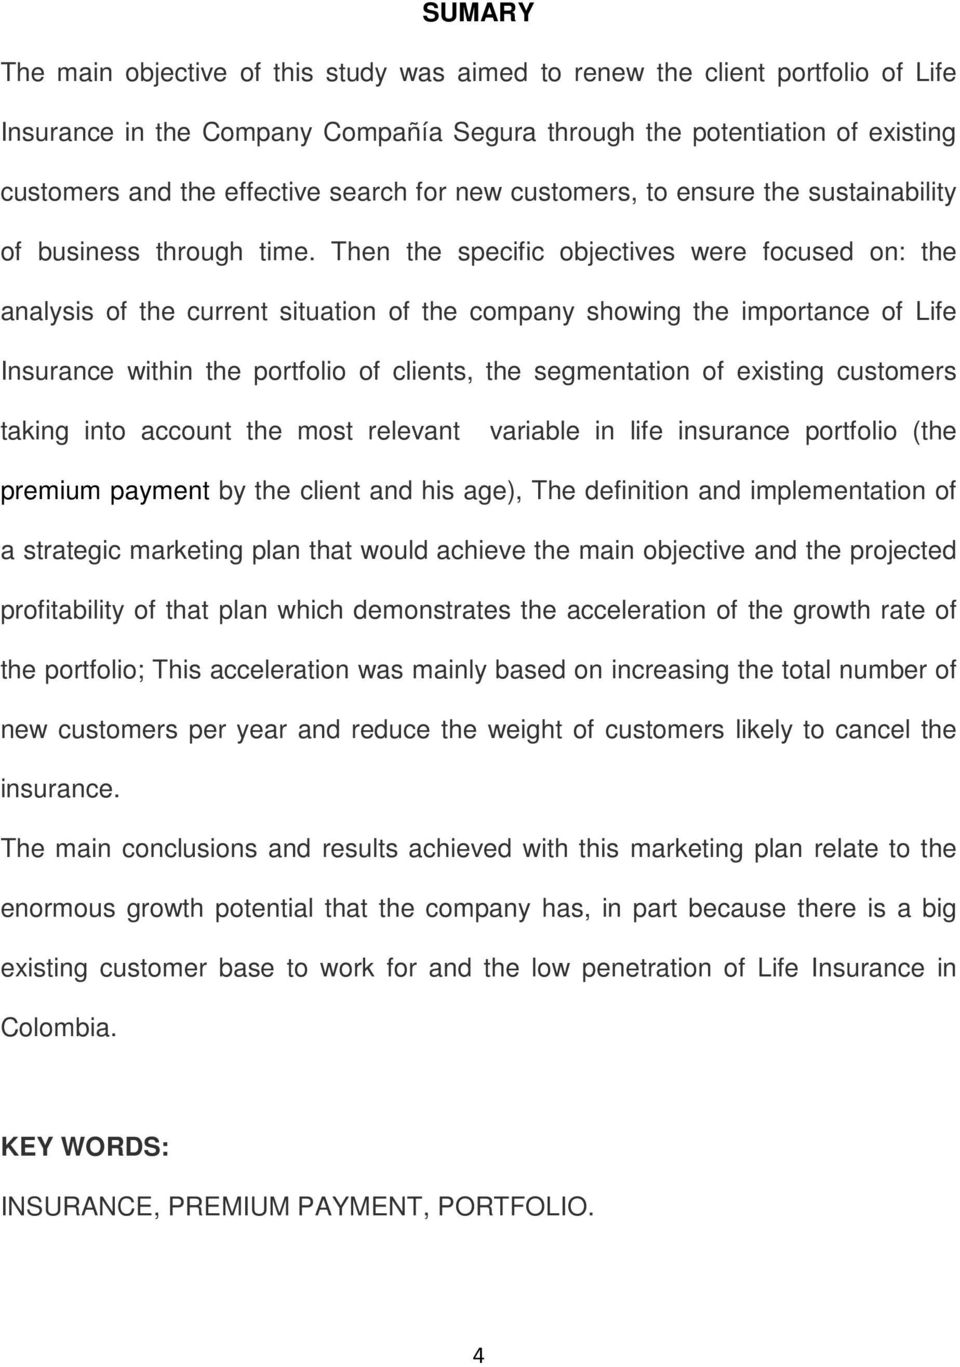 Then the specific objectives were focused on: the analysis of the current situation of the company showing the importance of Life Insurance within the portfolio of clients, the segmentation of